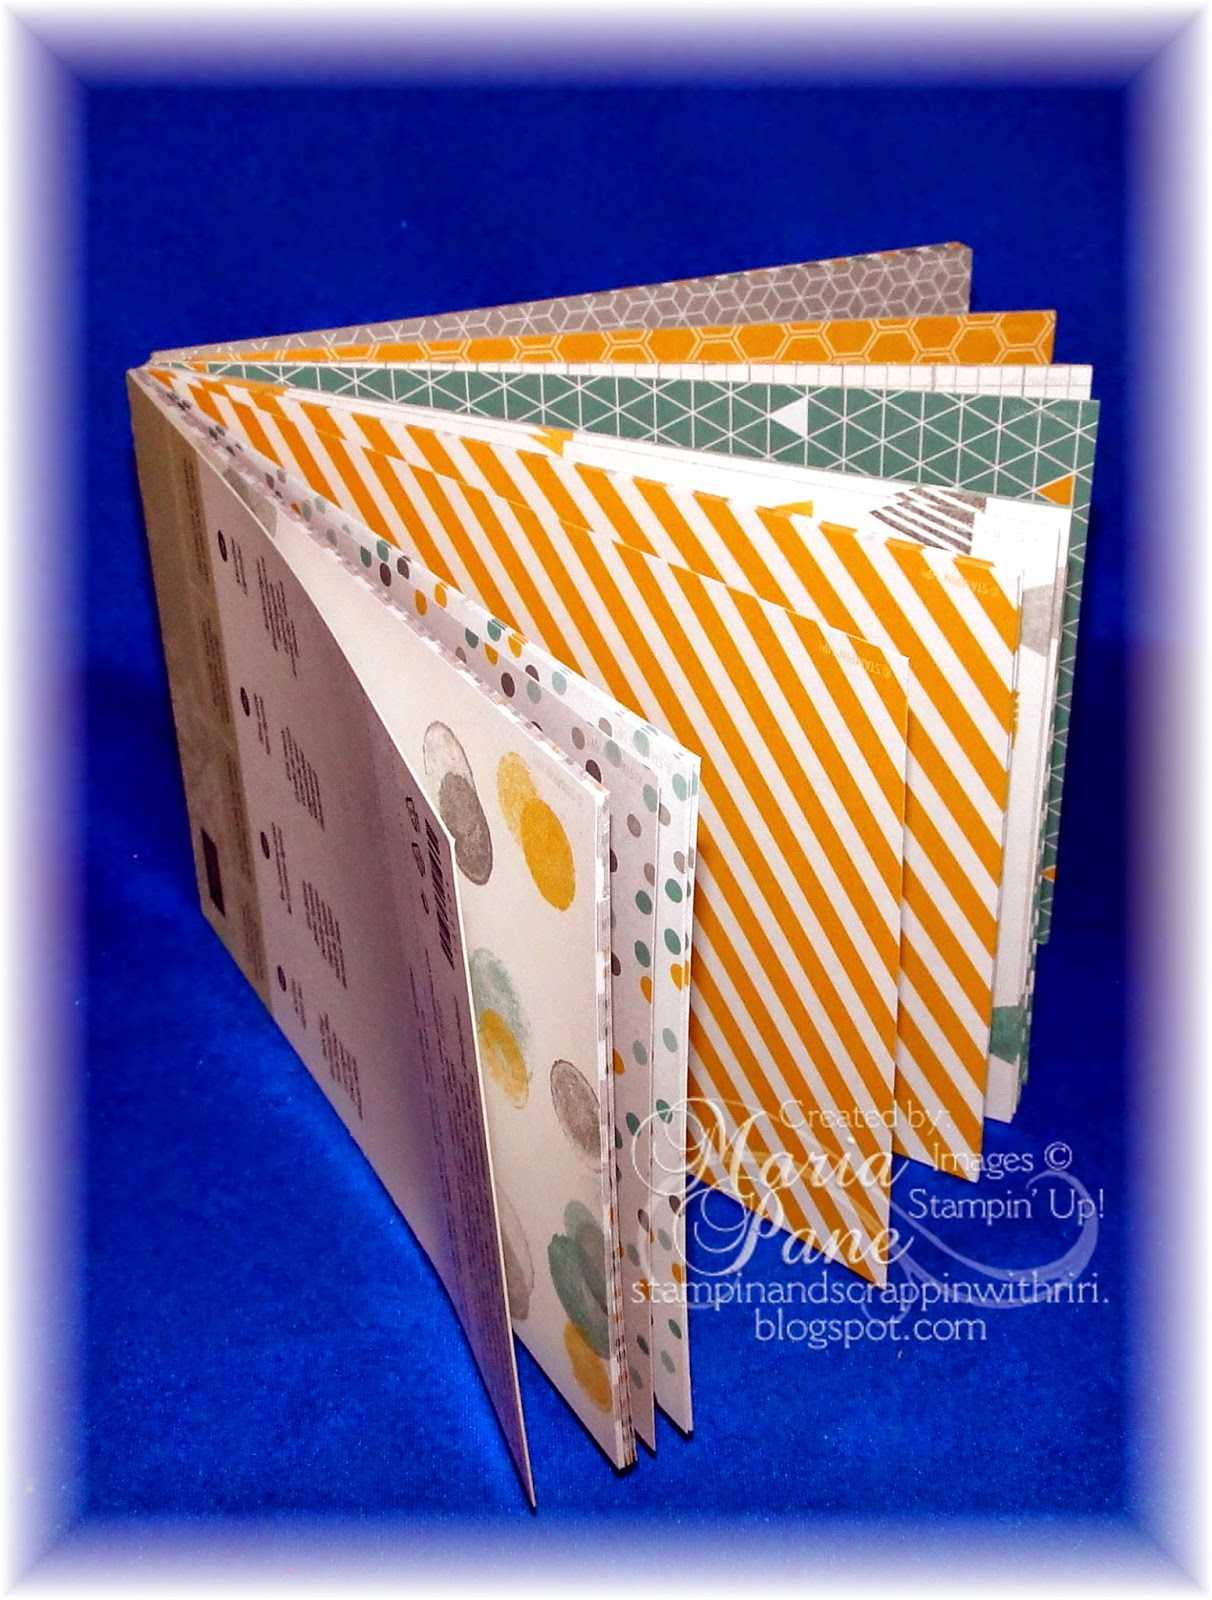 http://stampinandscrappinwithriri.blogspot.com/2014/05/new-su-moonlight-paper-stack.html